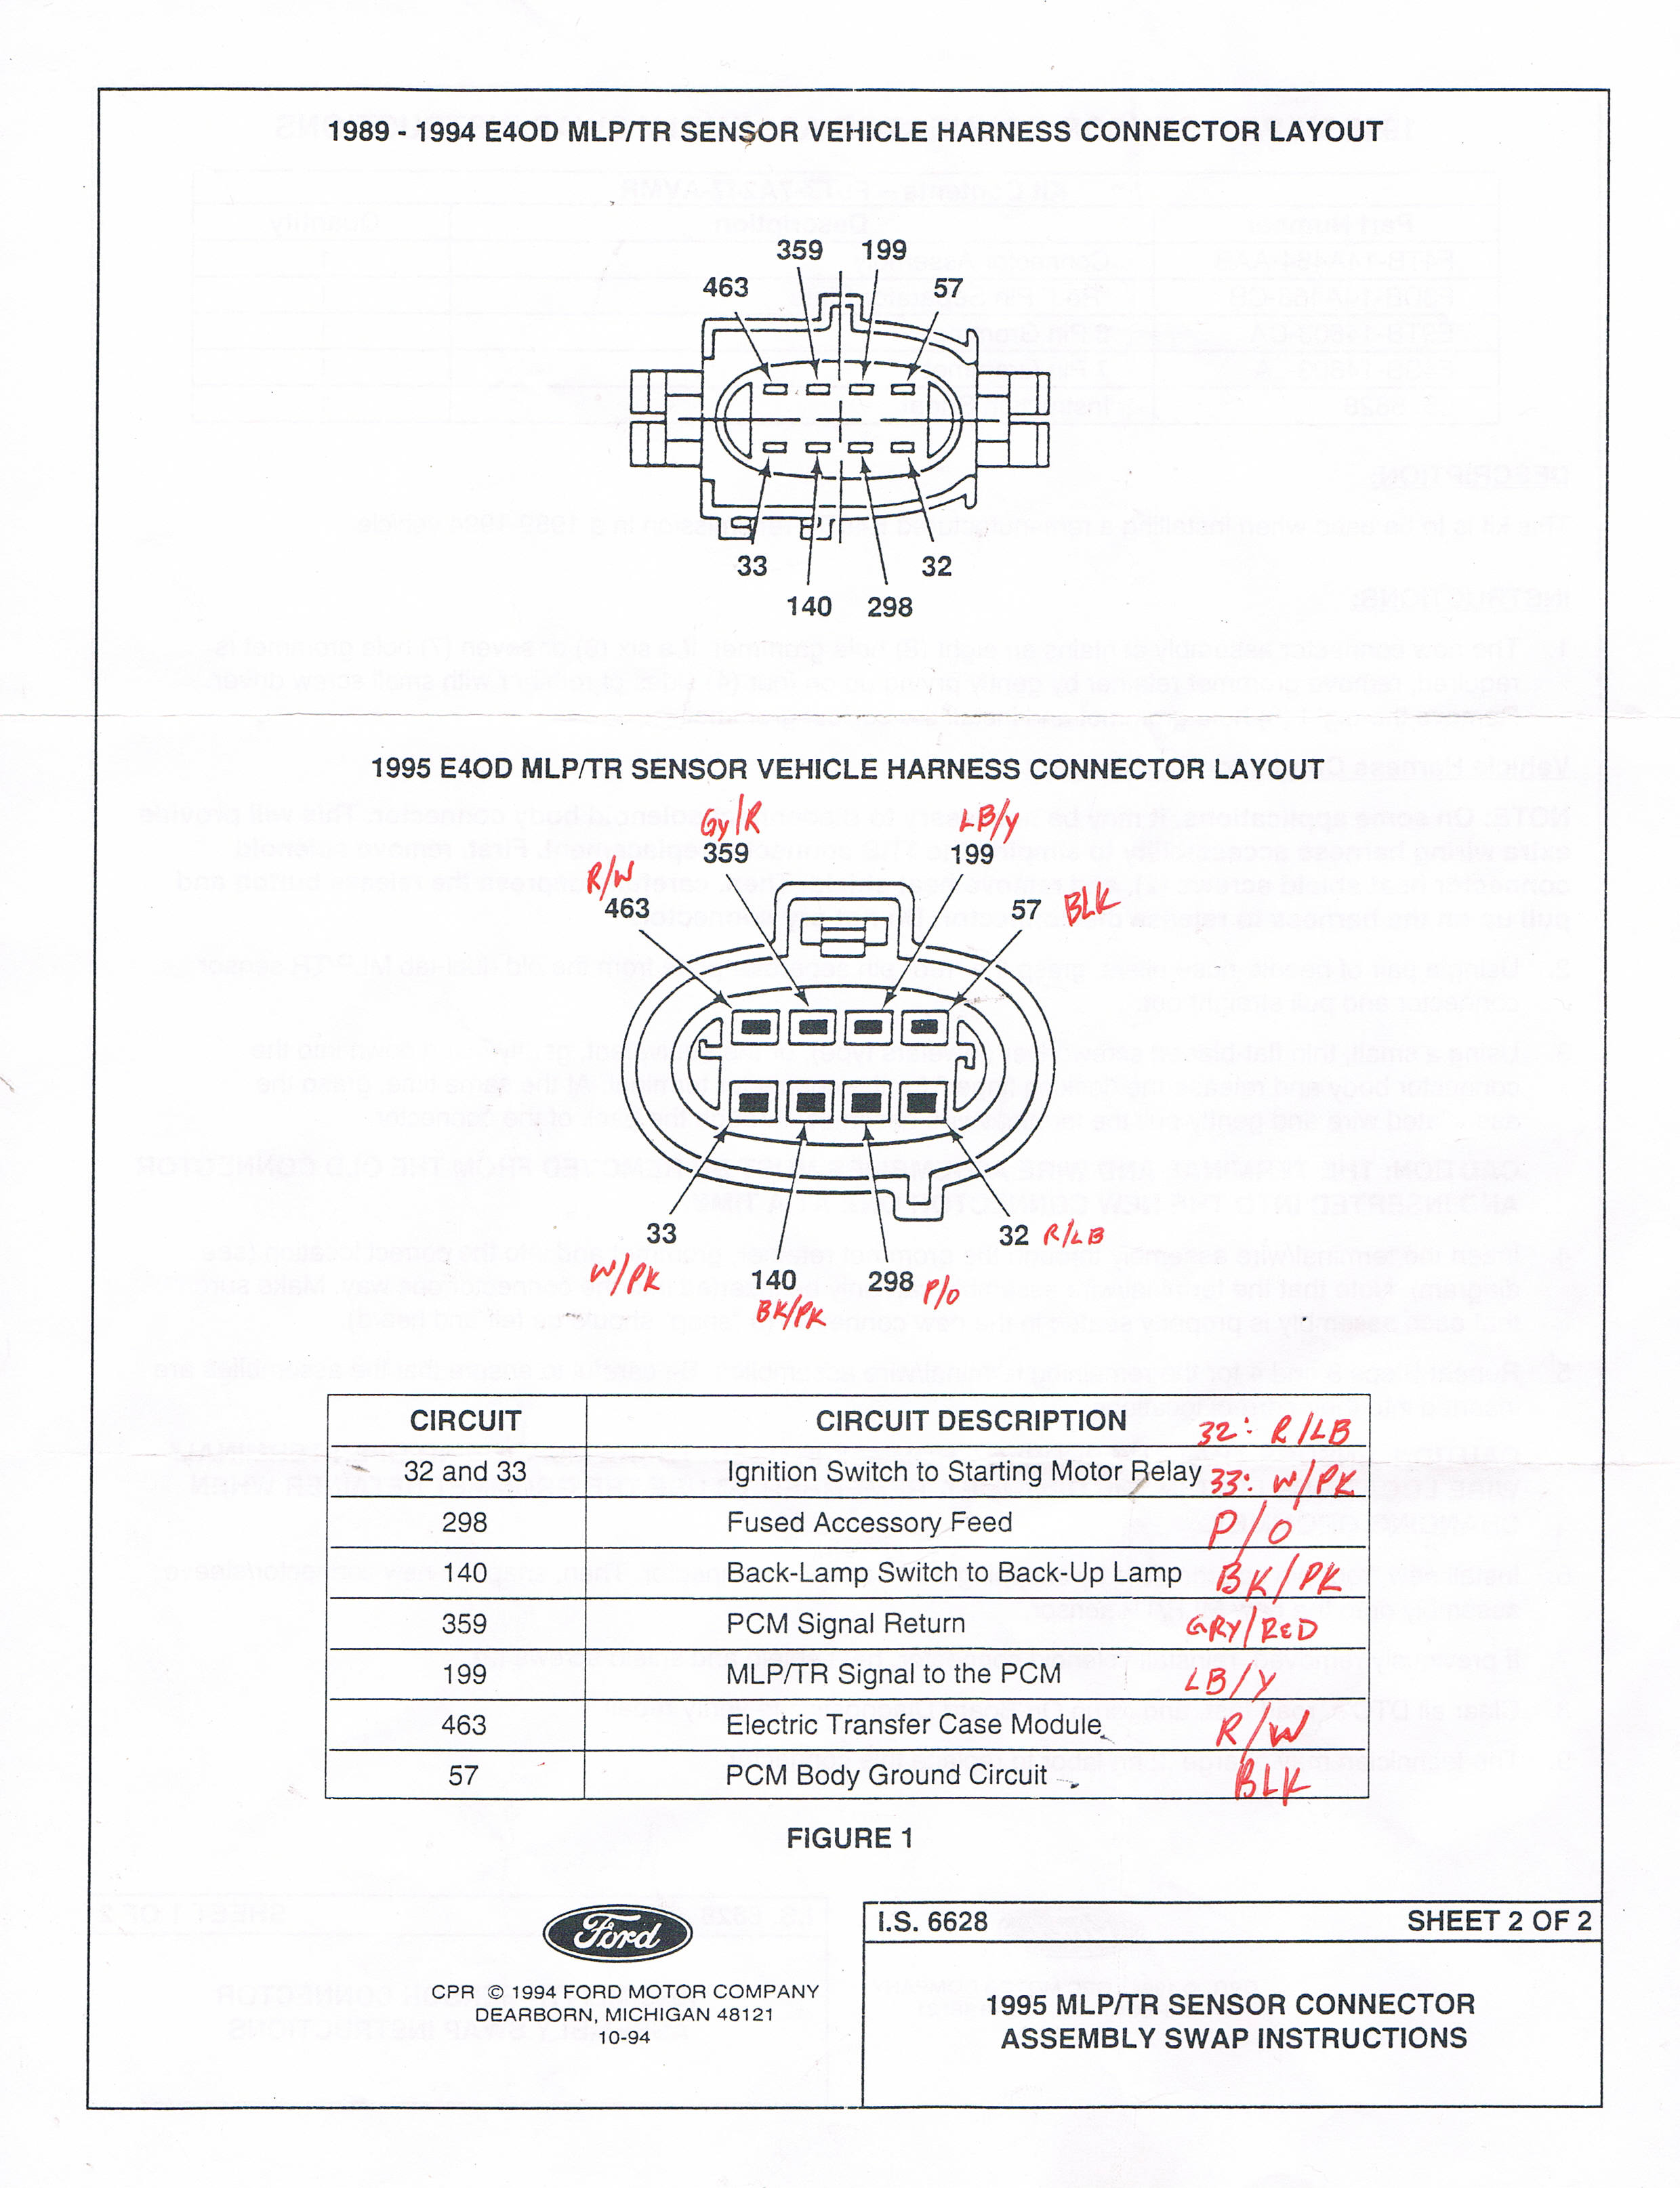 2014 Nissan Pathfinder Wiring Harness Library 7 Pin Connector Transmission Connectors Schematics Rh Parntesis Co Automotive